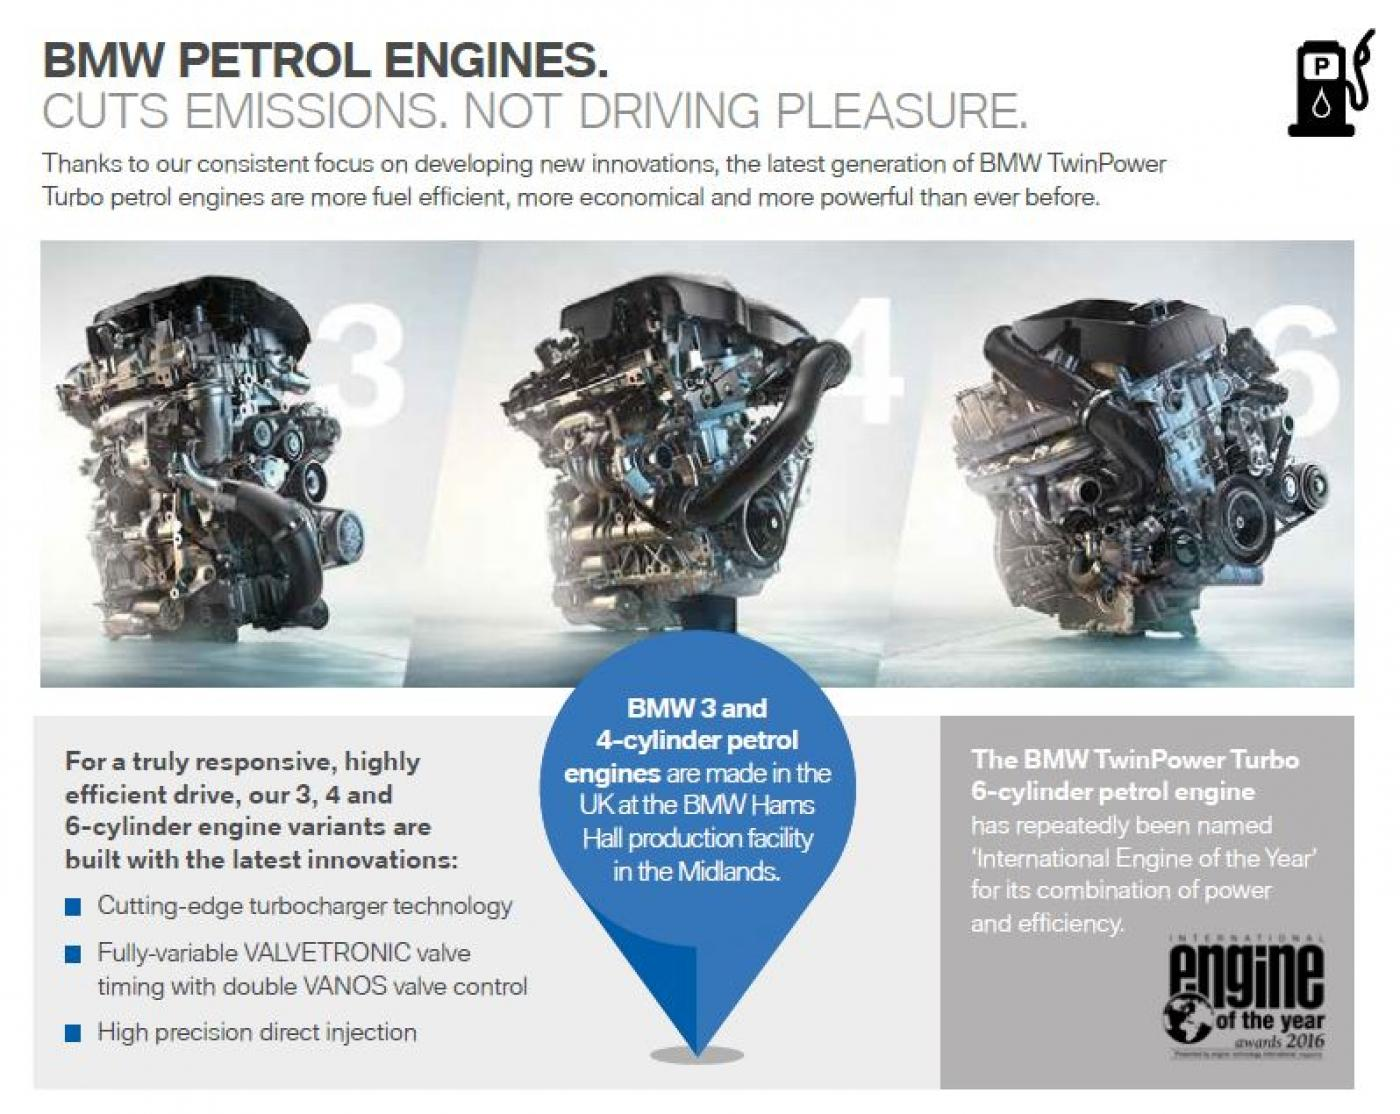 BMW Petrol Engines